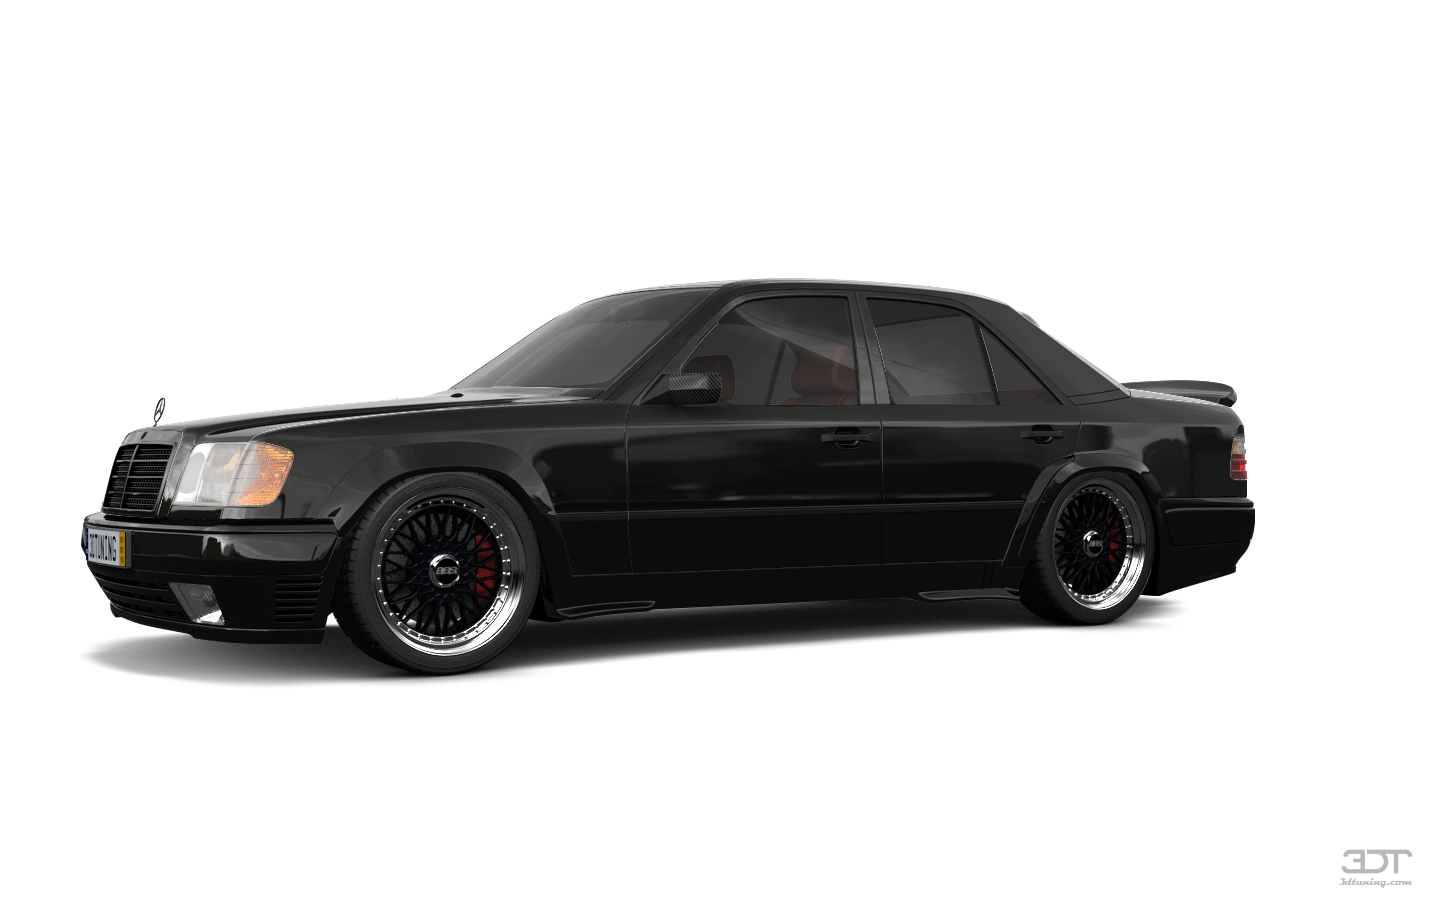 Mercedes E-Class Sedan 1984 tuning